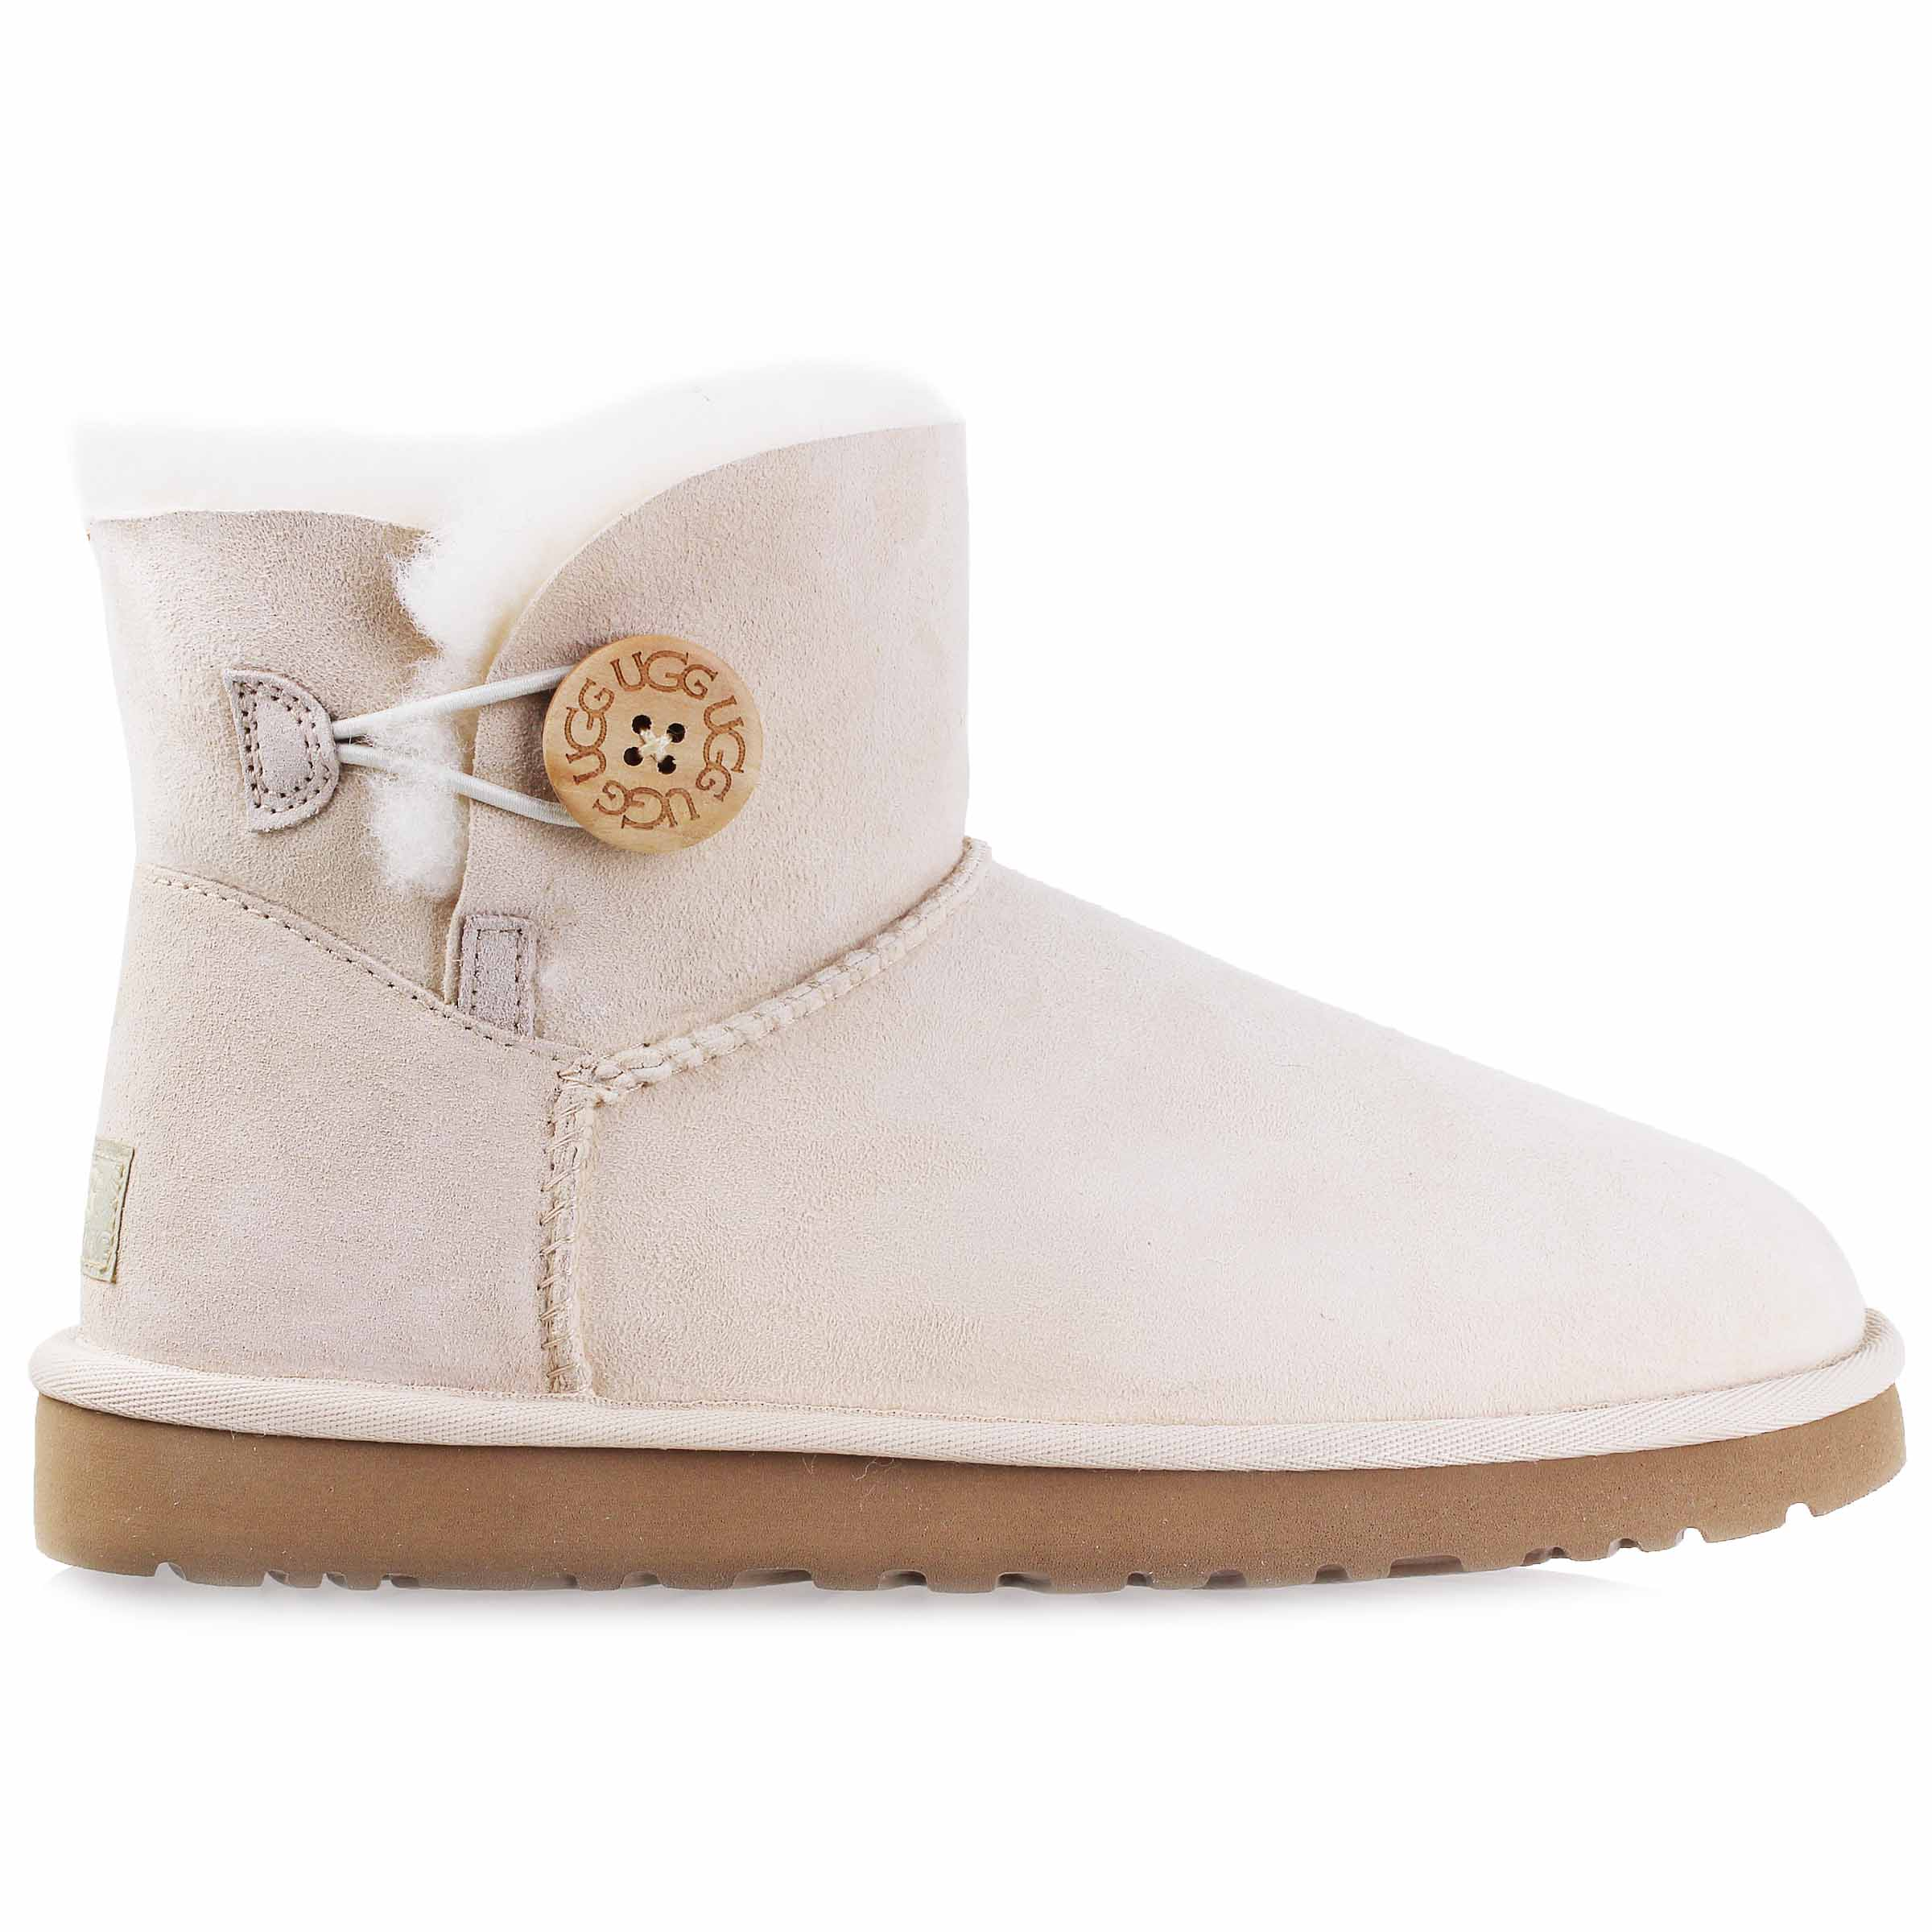 Ugg Femmes Mini Bailey Button Snow Bottes Button Chaussures FSNW 3352 W FSNW Fresh Snow | daa61e9 - radicalfrugality.info